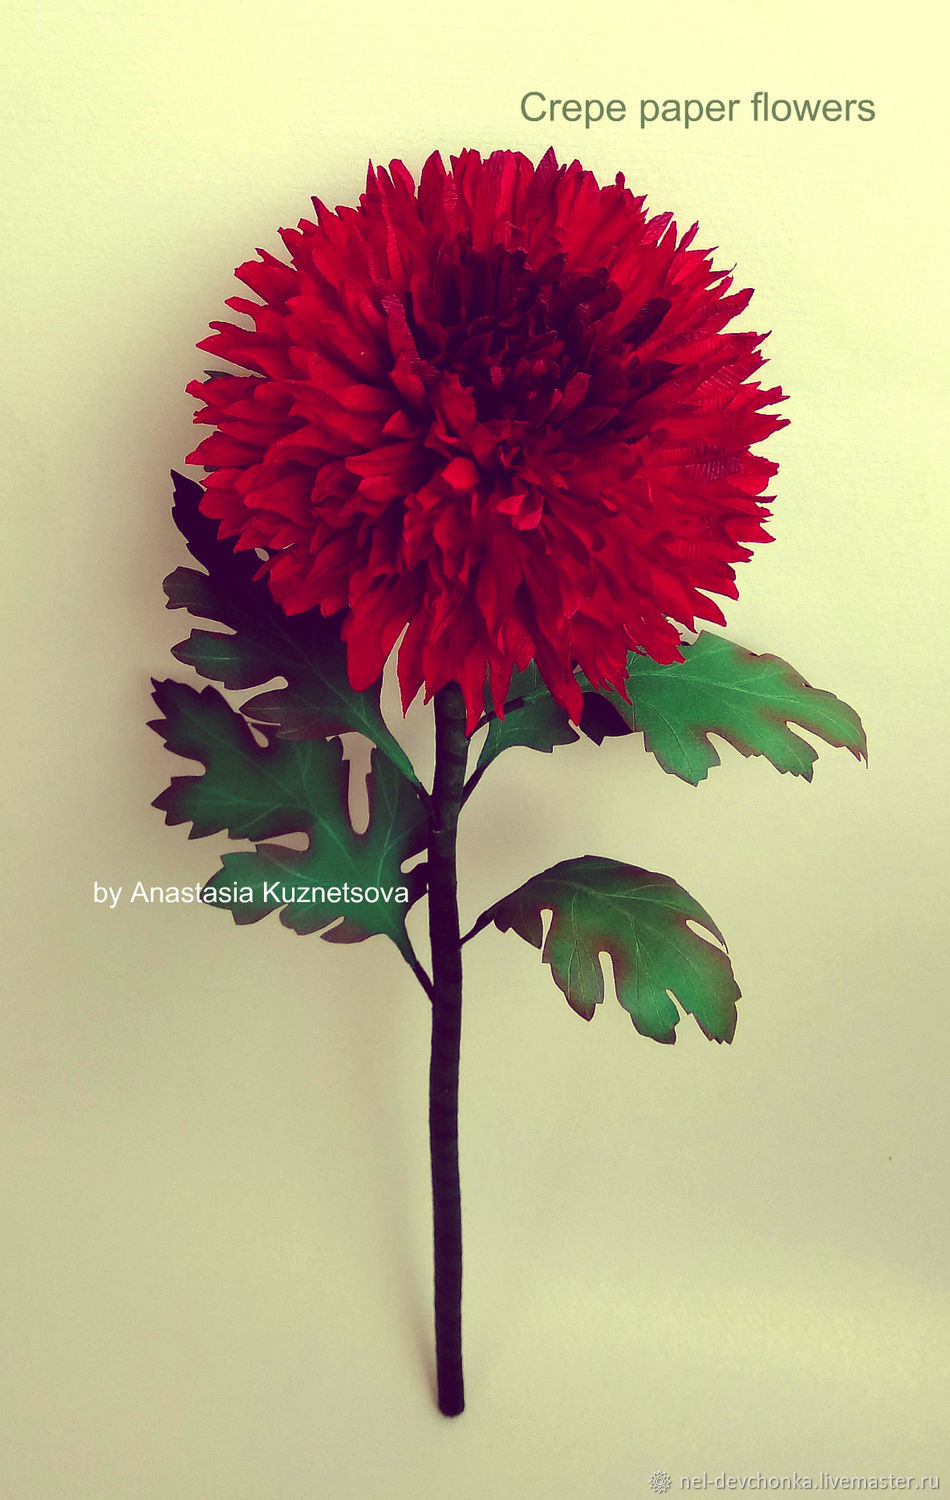 Chrysanthemum From Crepe Paper Shop Online On Livemaster With